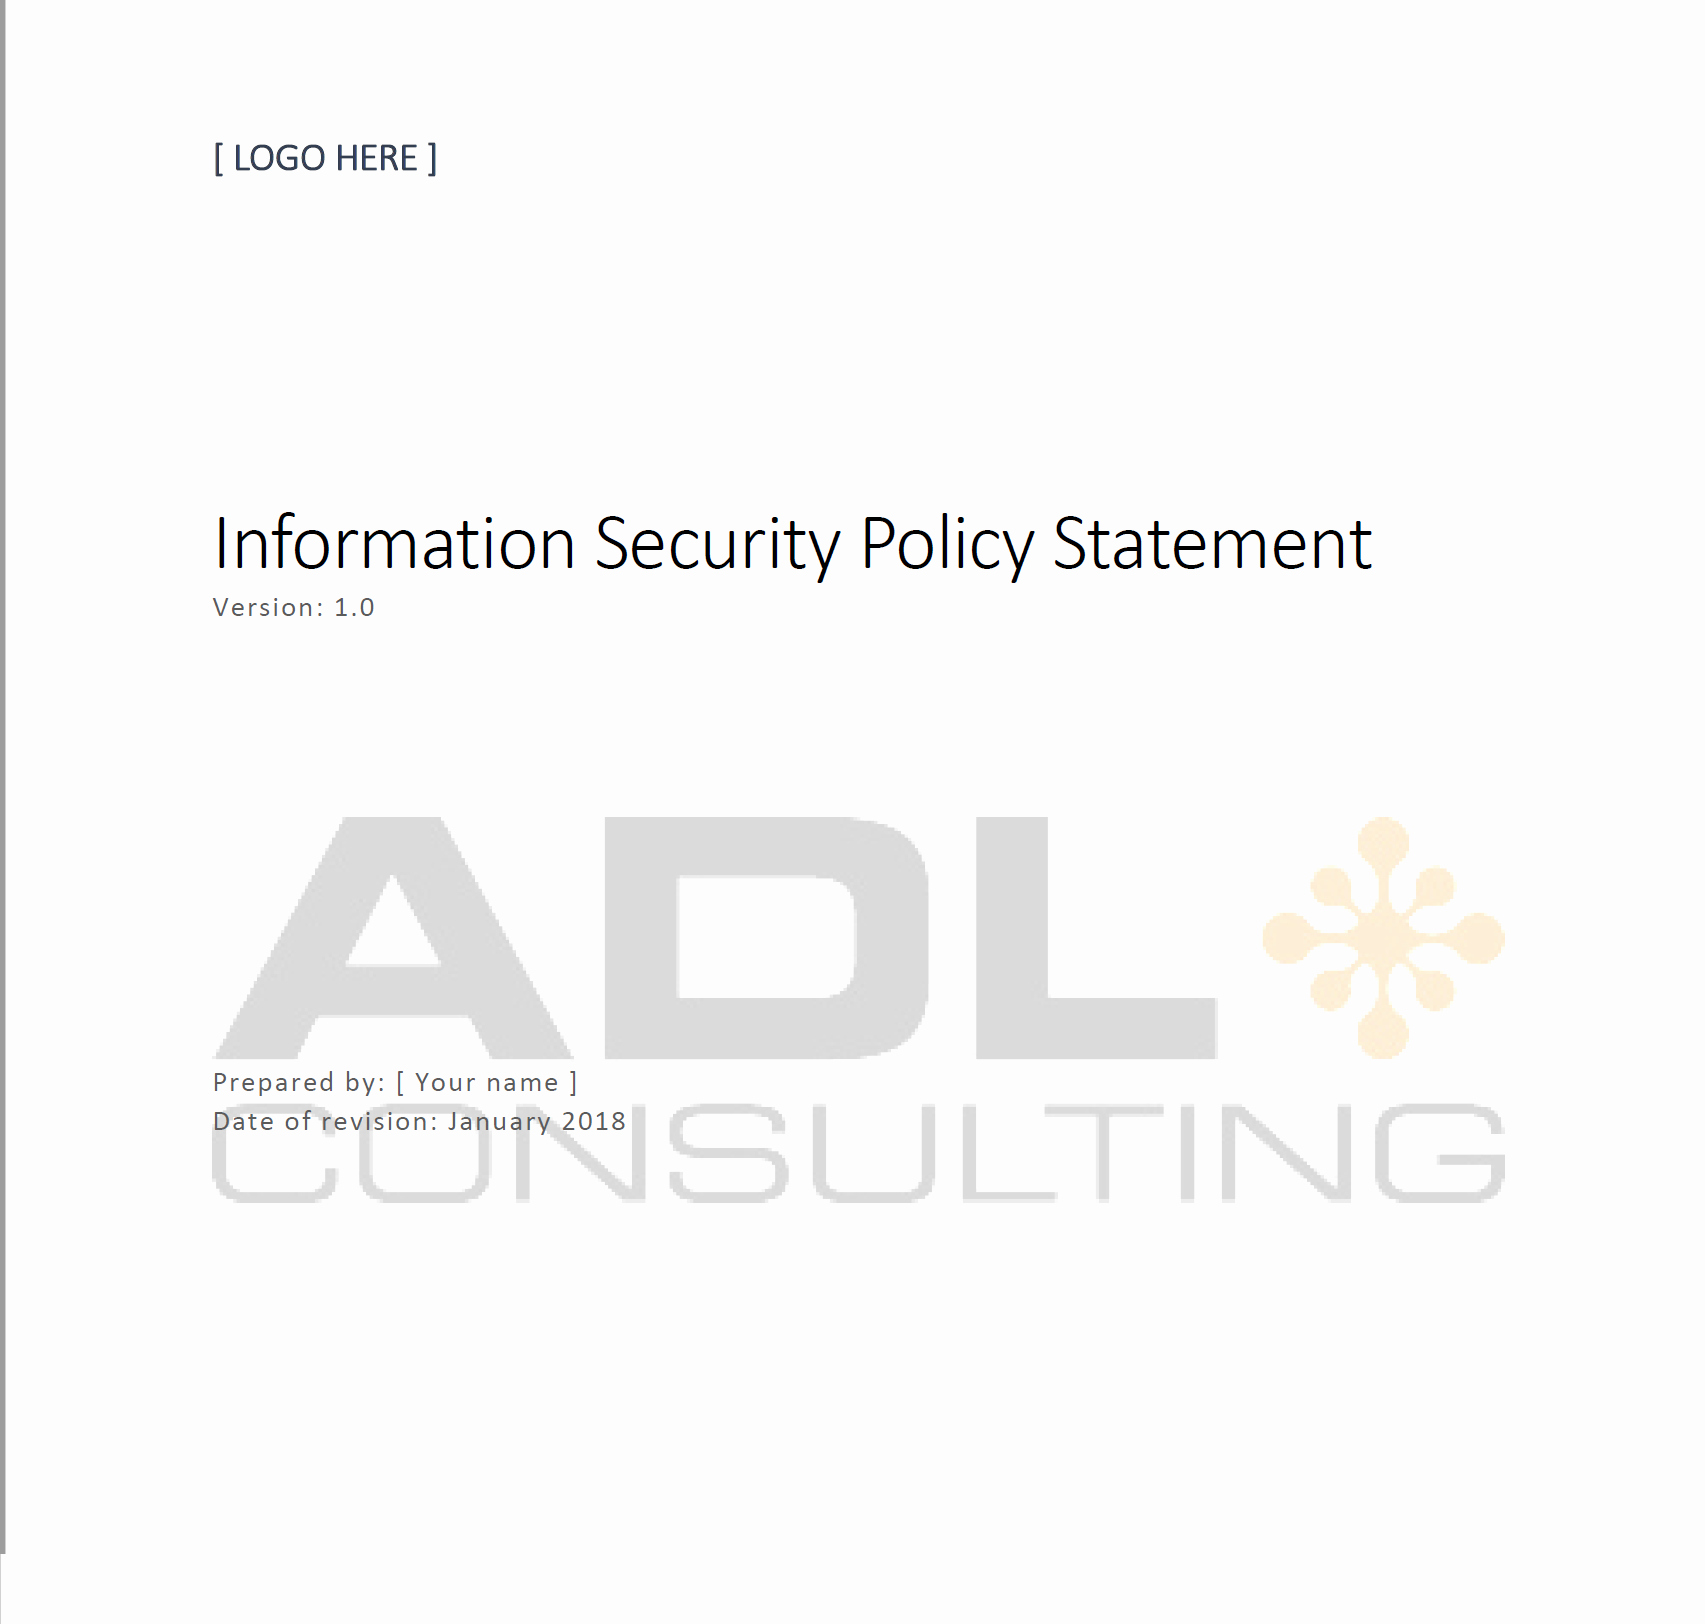 Information Security Policy Template Beautiful Information Security Policy Statement Template